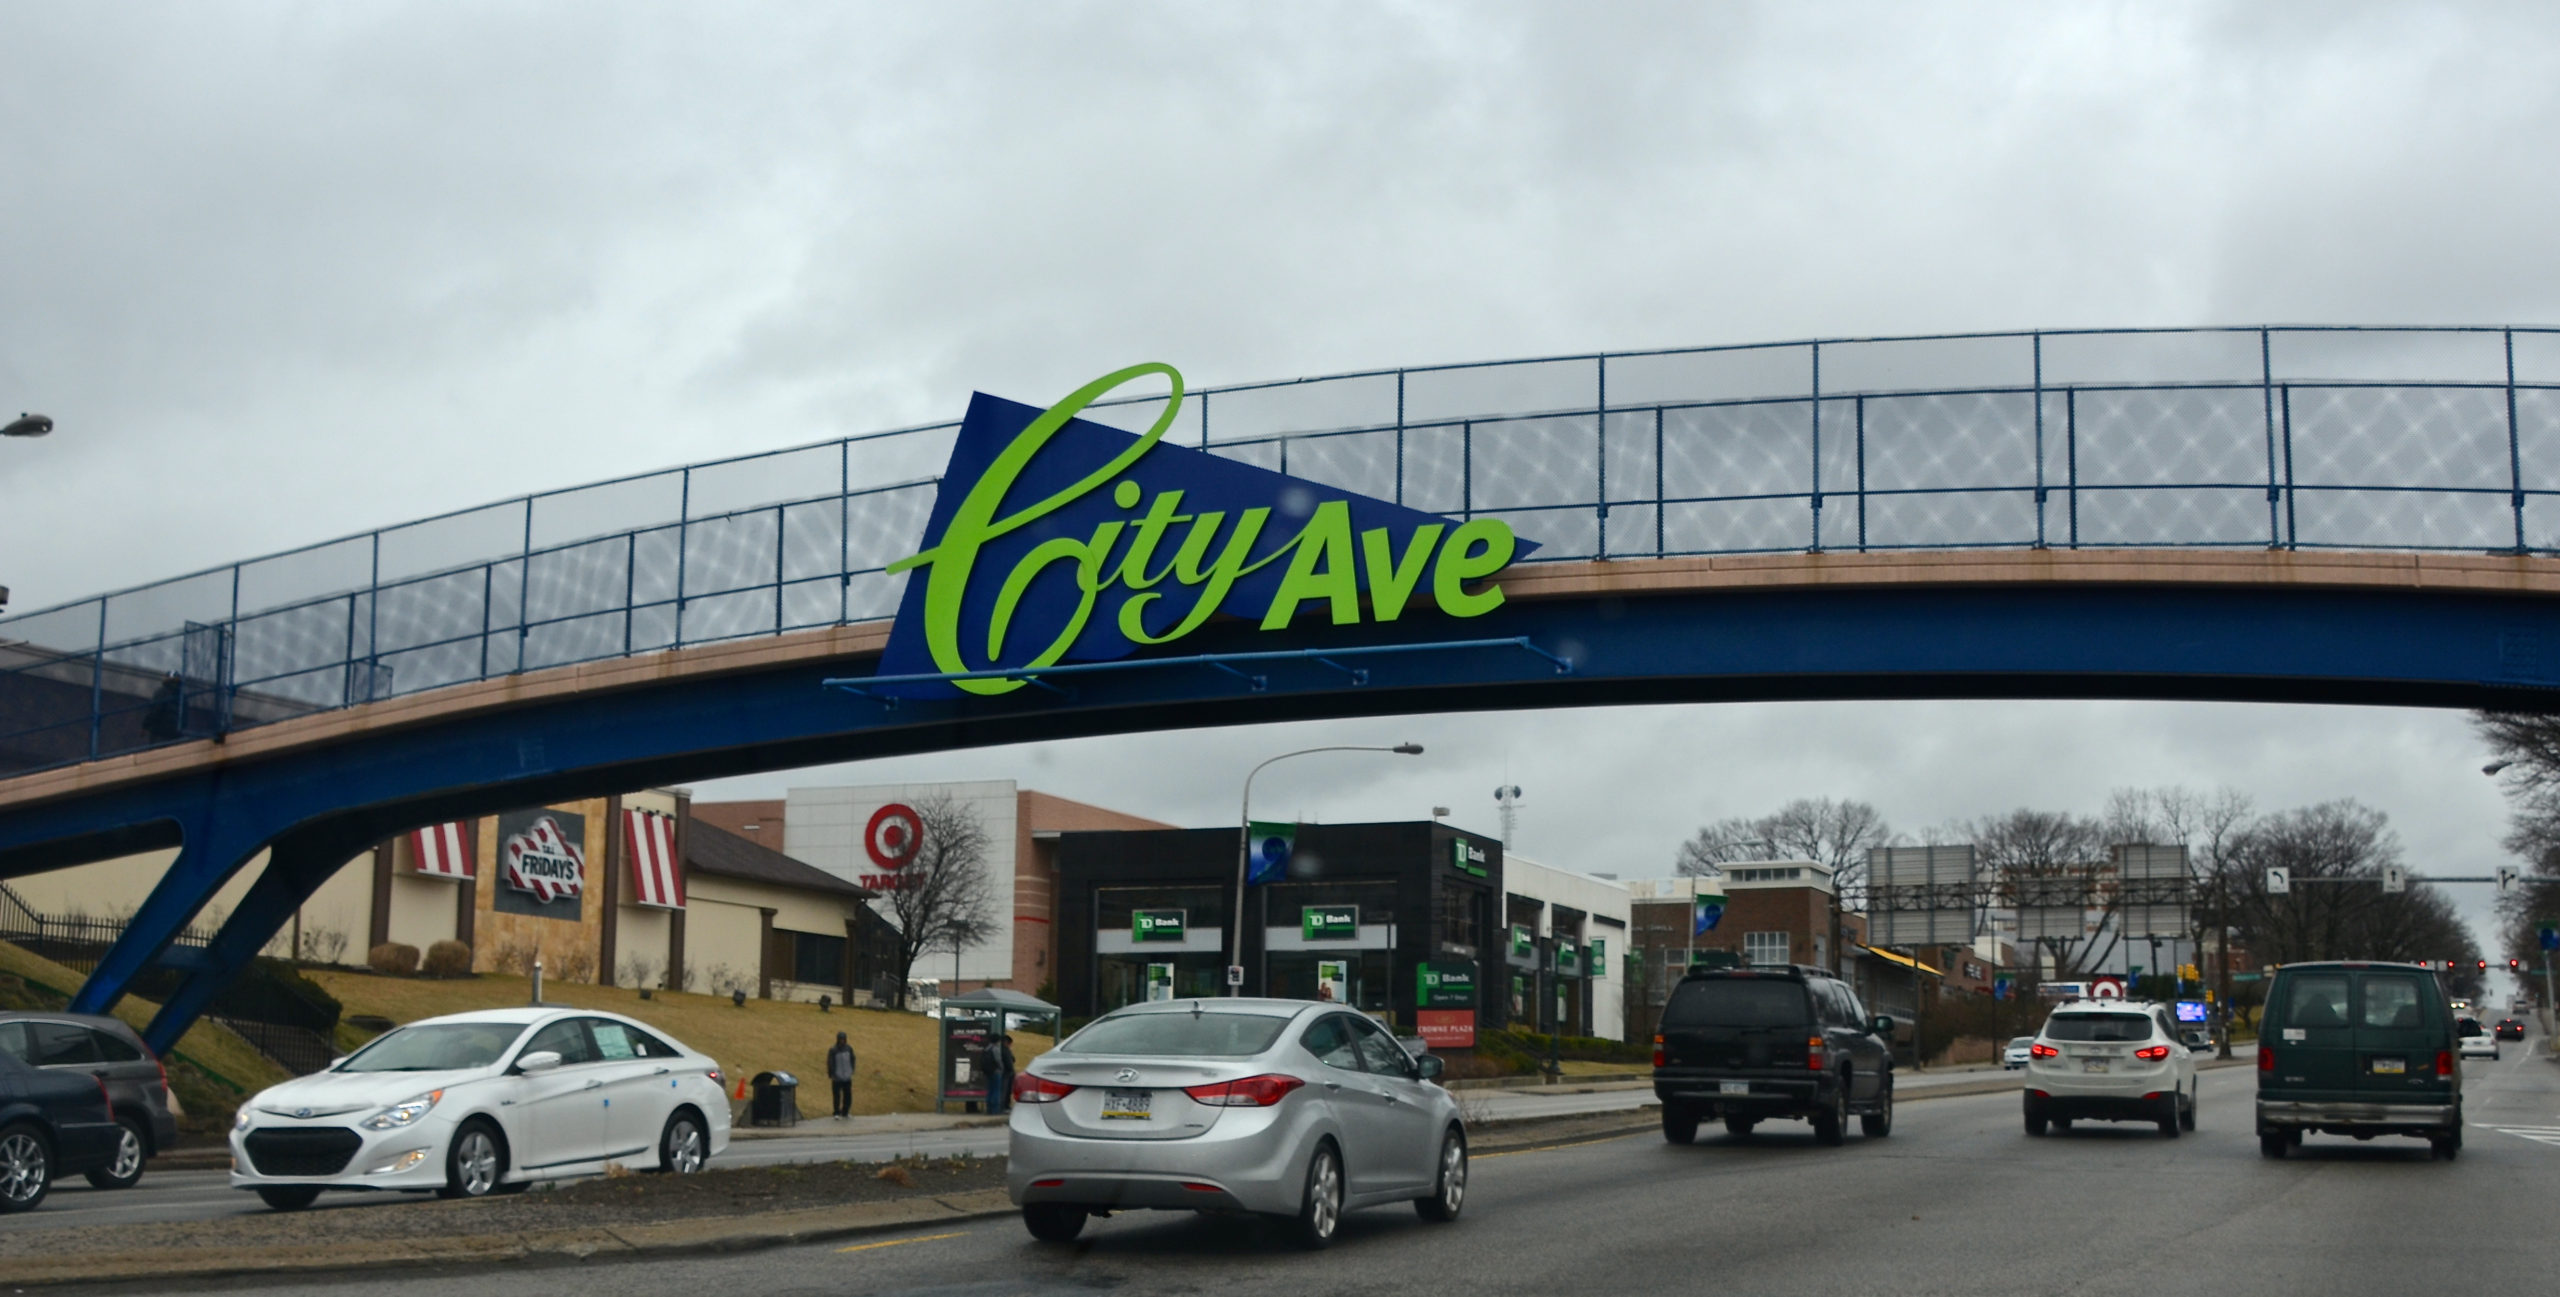 Second Annual CityAve Future Cast Unveils Exciting New Projects Coming to the District